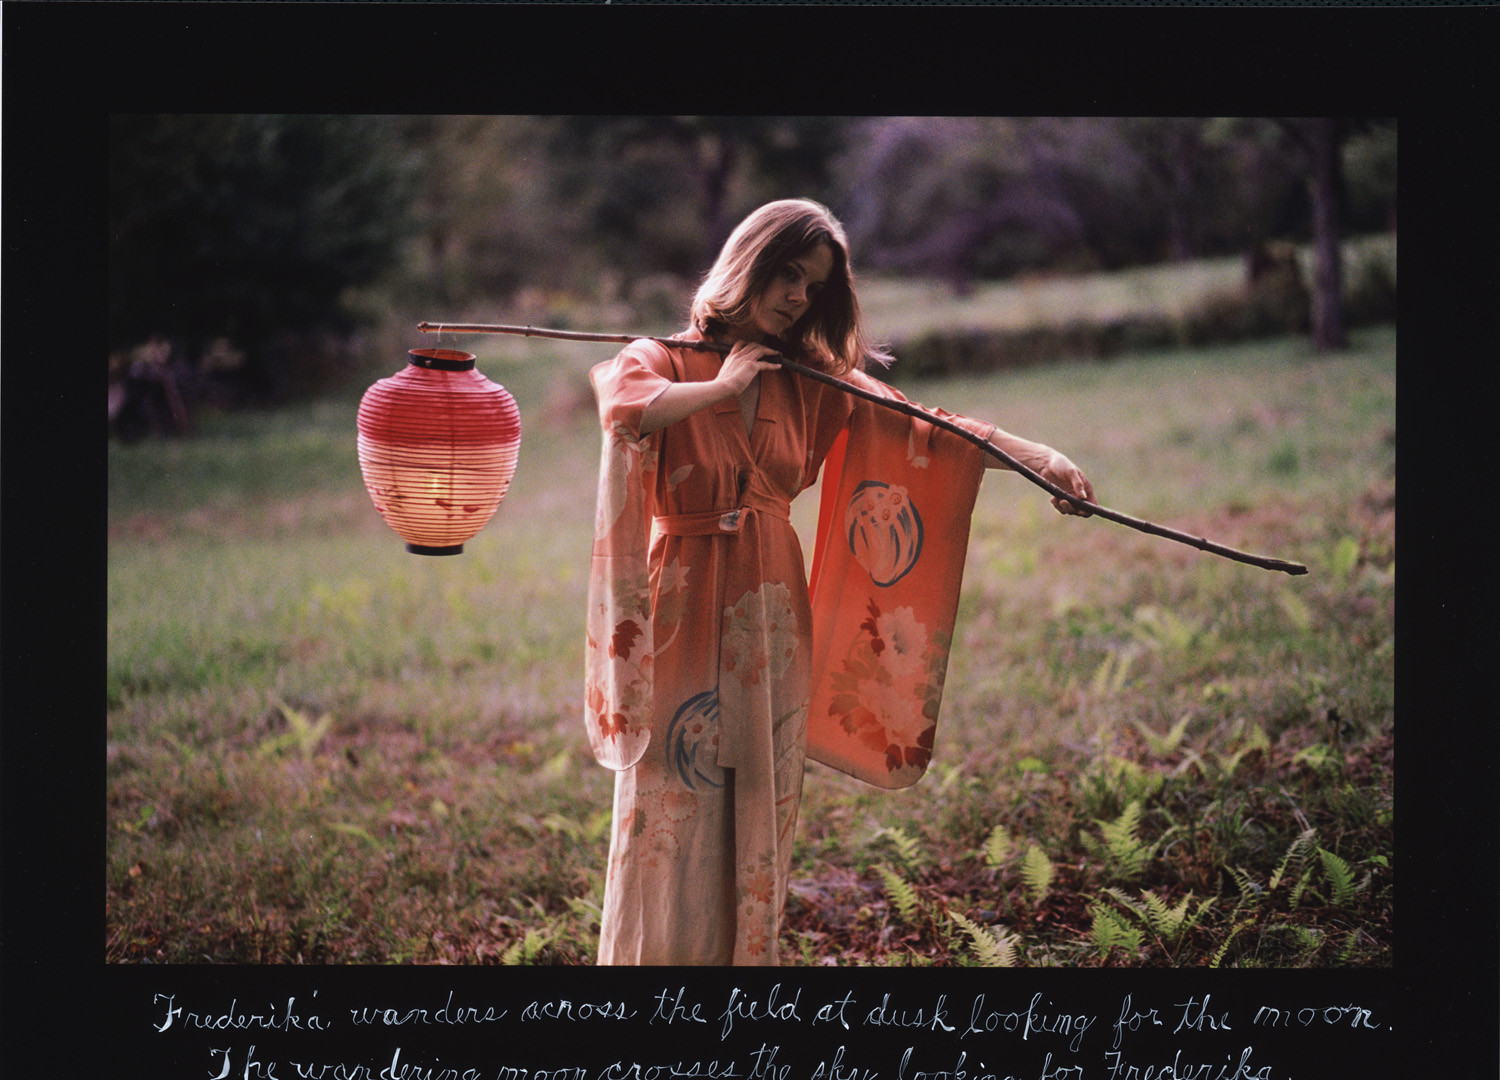 Duane Michals, Frederika Wanders Across the Field at Dusk Looking for the Moon, September 27, 2005